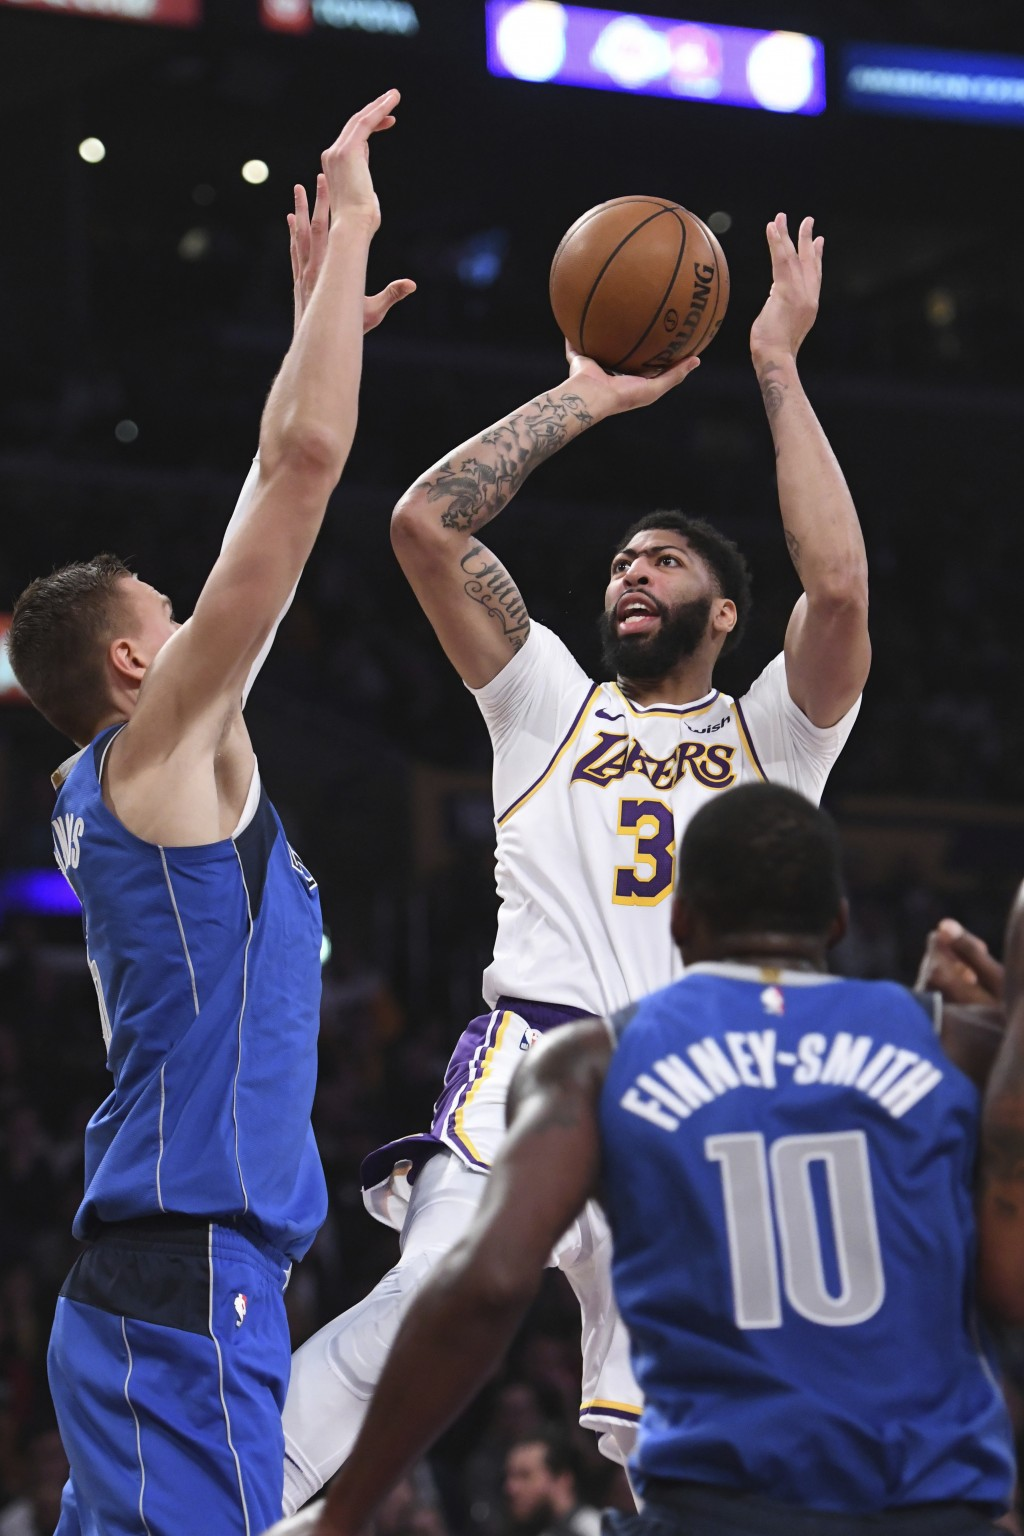 Los Angeles Lakers forward Anthony Davis (3) shoots against the Dallas Mavericks forward Kristaps Porziņgis, left, during the first half of an NBA bas...